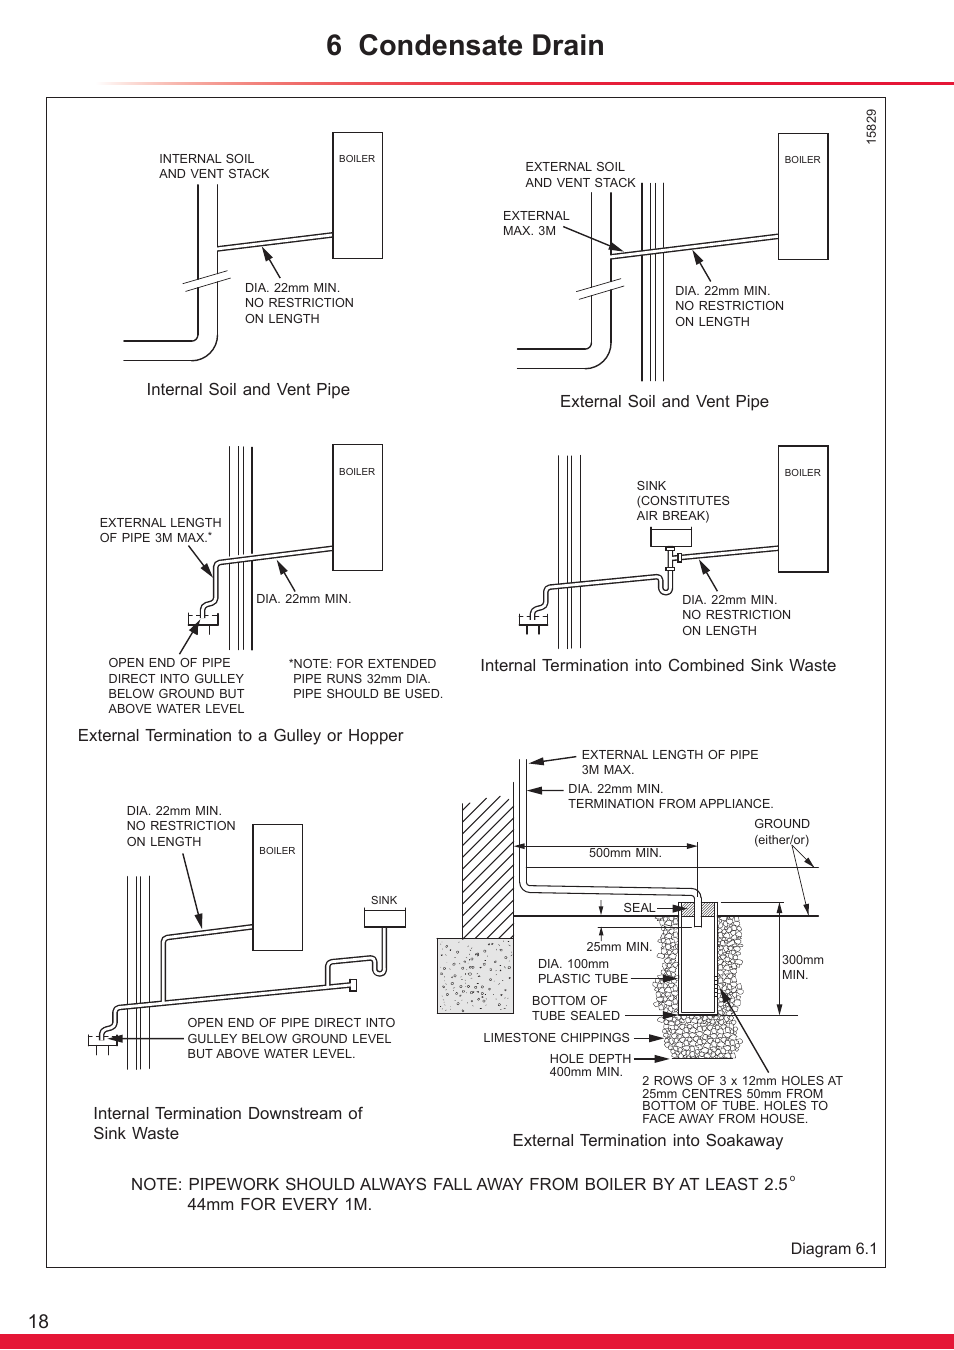 6 condensate drain | Glow-worm Ultrapower sxi User Manual | Page 18 ...